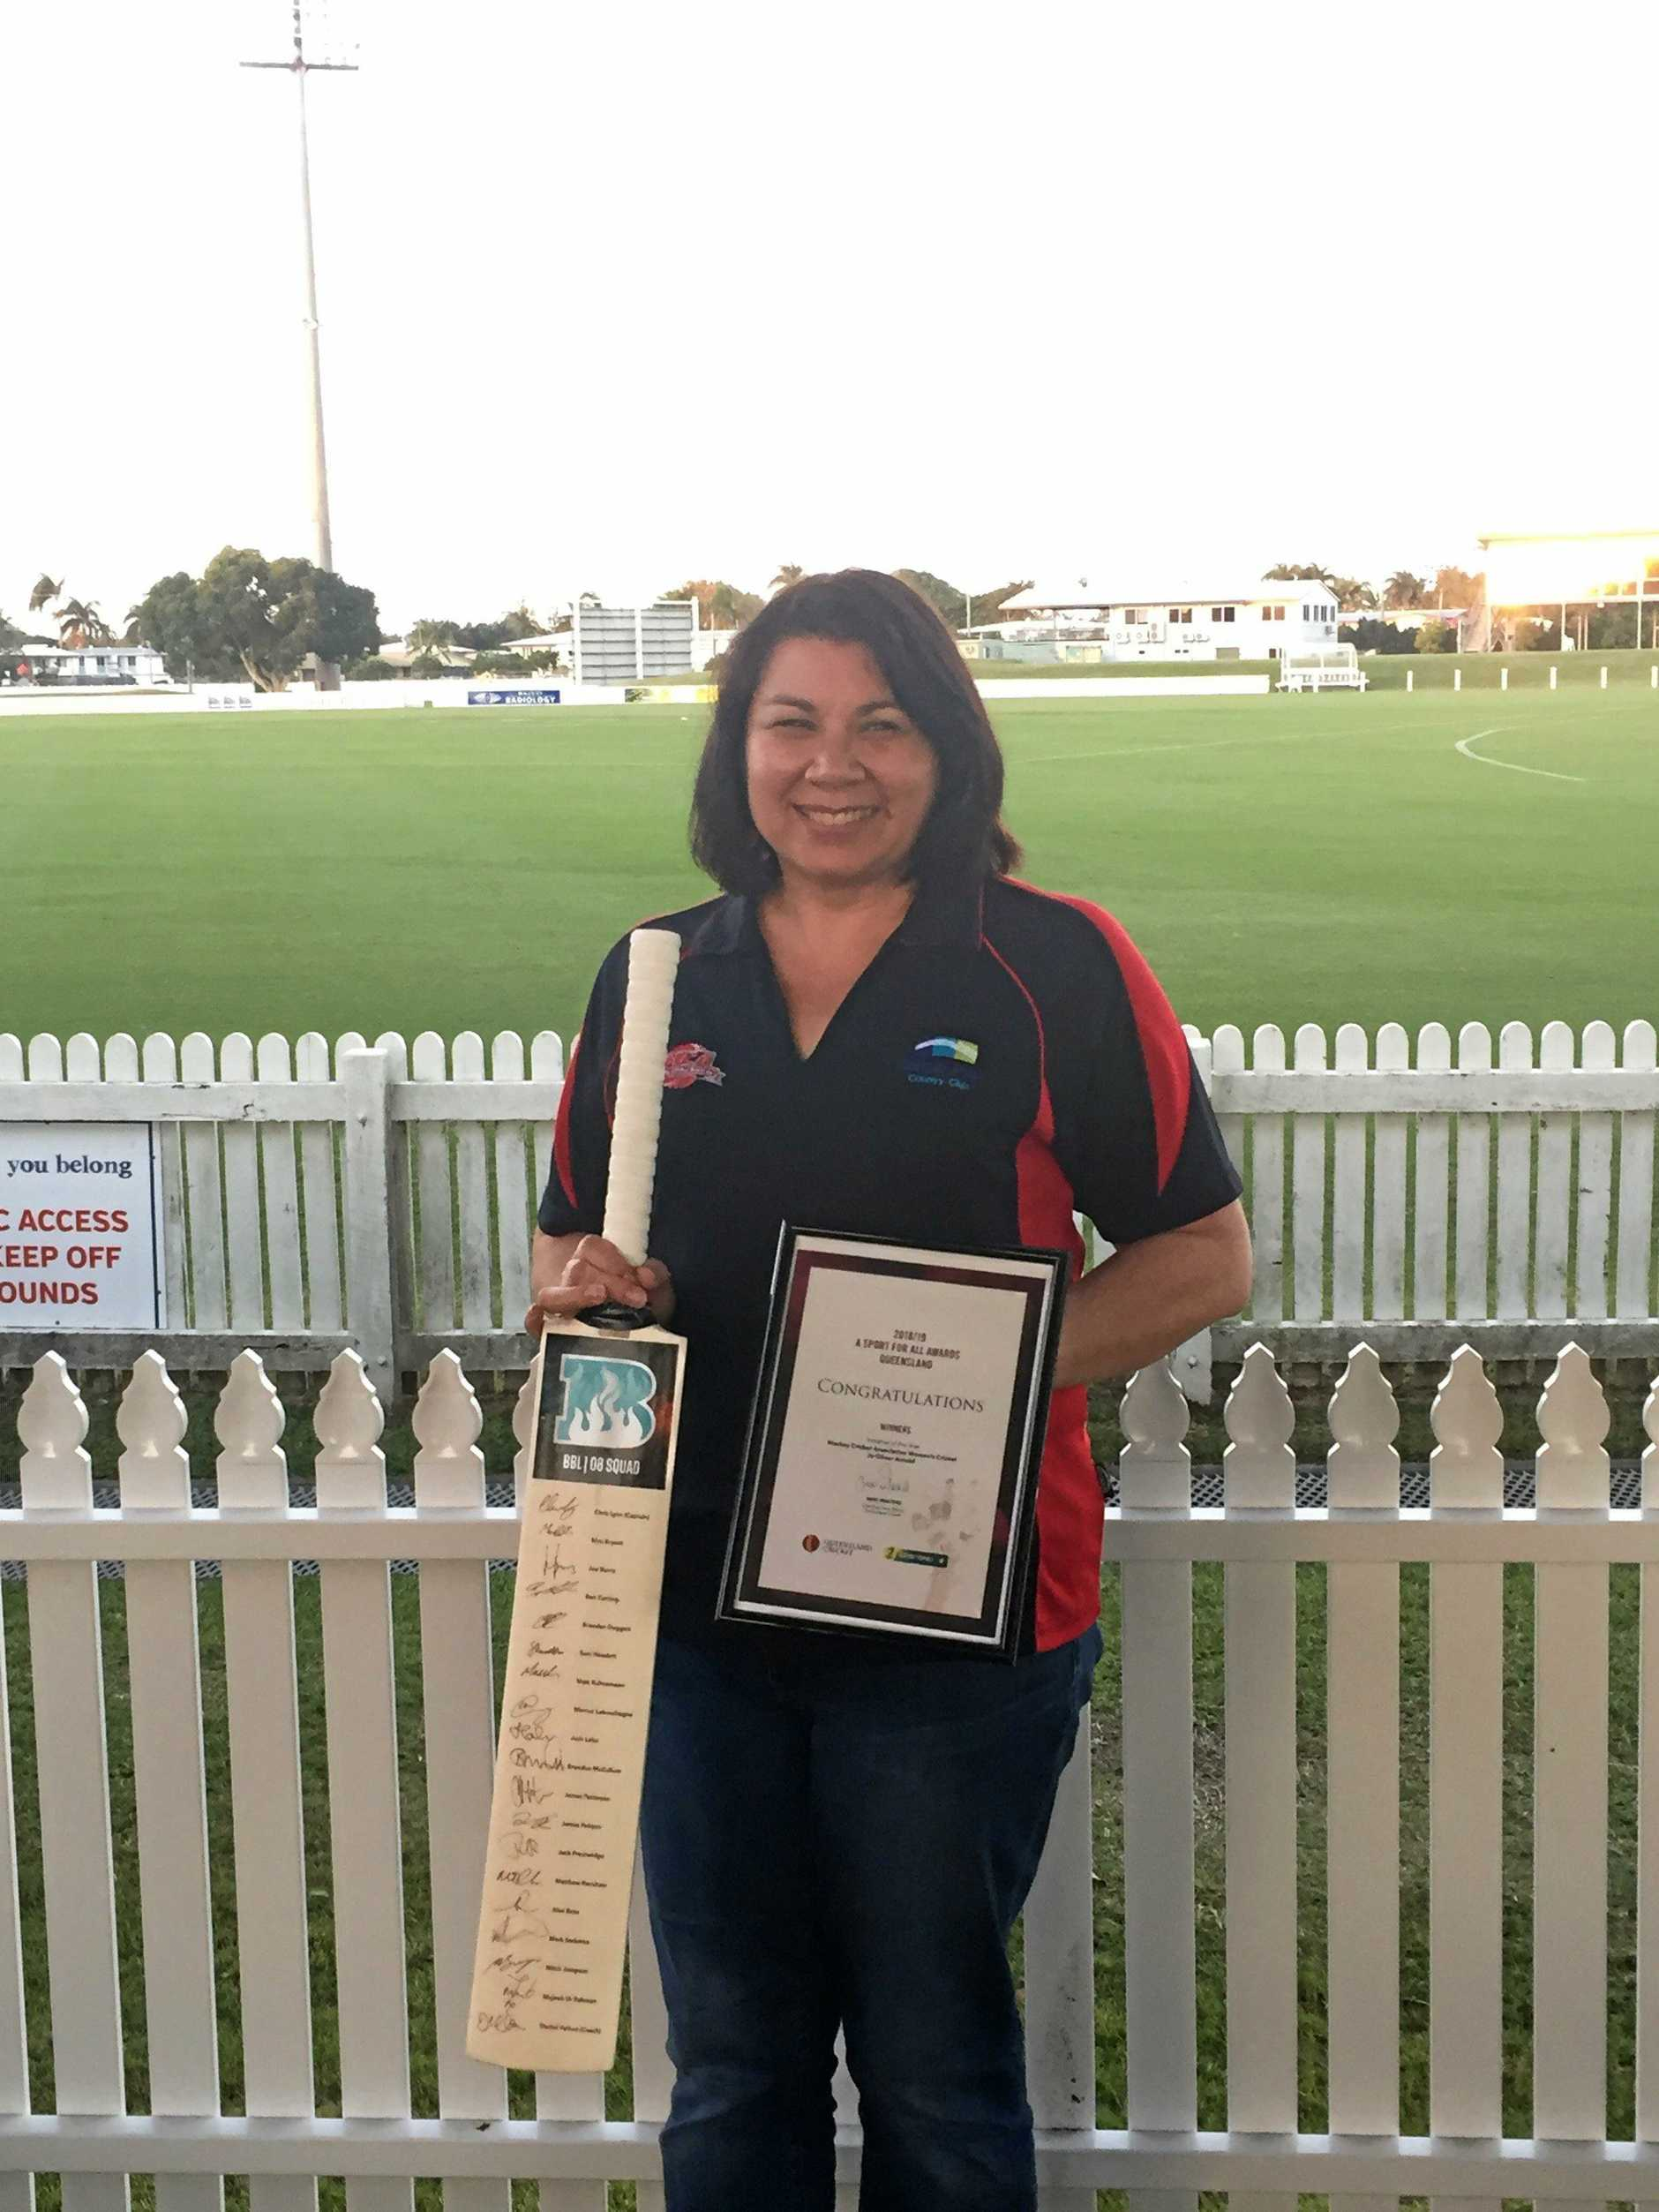 Jo Oliver Arnold was the Queensland Winner of the Initiative of the Year award for her involvement with Mackay Cricket Association Women's Cricket.